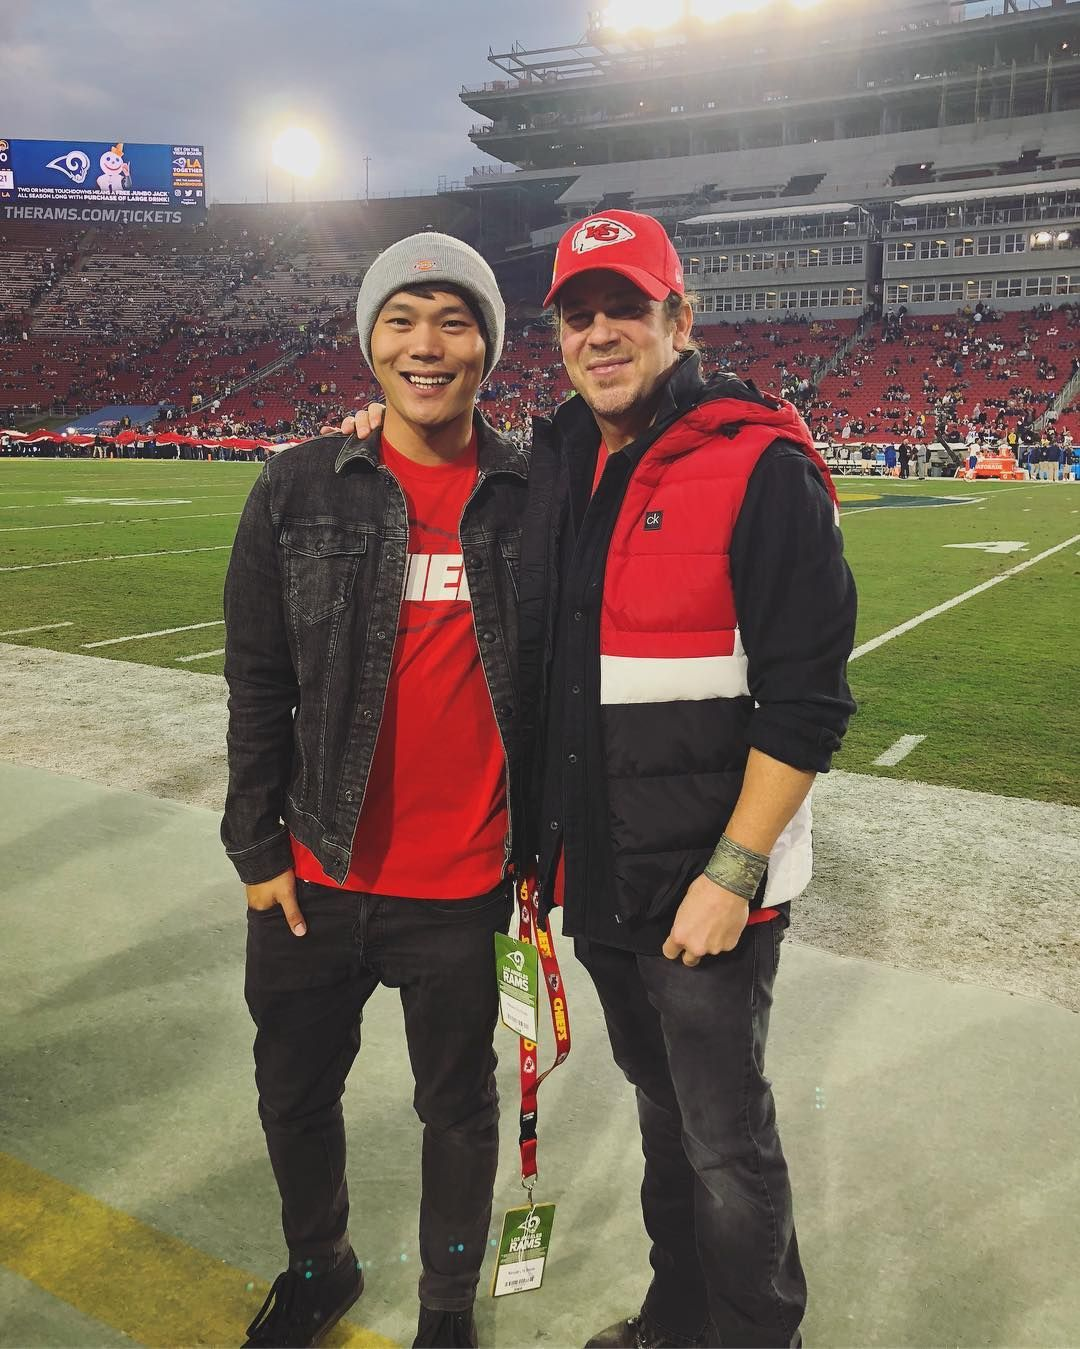 John Harlan Kim On Instagram Monday Night Football Rams Chiefs Sitting In The Owner S Box I M Pretty Sur Christian Kane Monday Night Football Monday Night